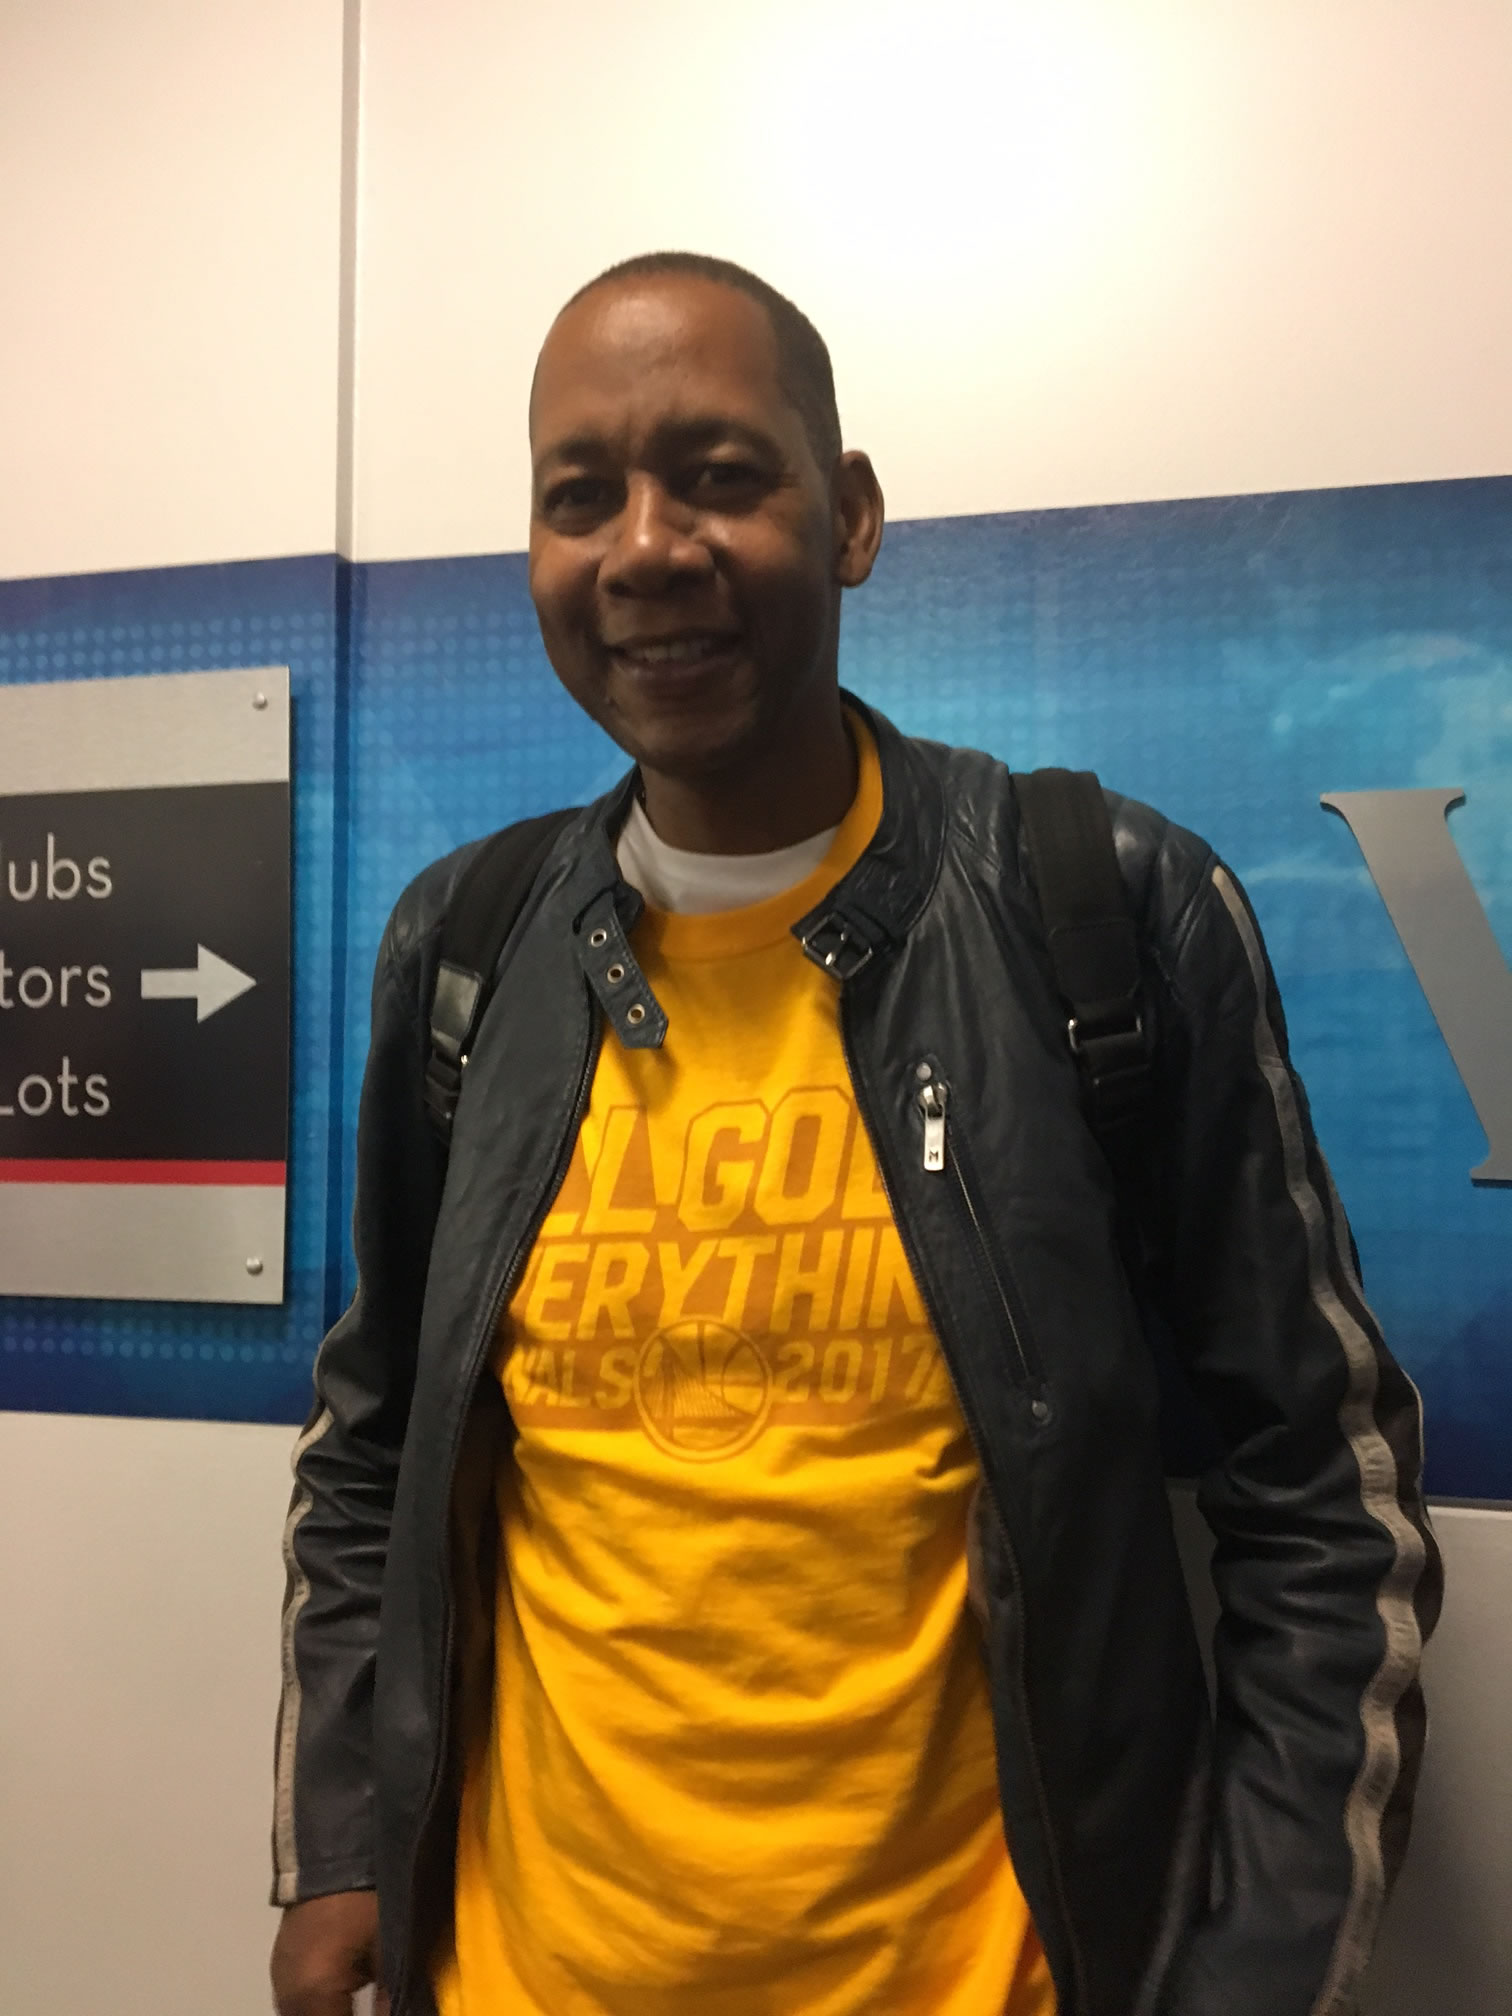 <div class='meta'><div class='origin-logo' data-origin='none'></div><span class='caption-text' data-credit=''>Oakland native and former &#34;Hangin' with Mr. Cooper&#34; star Mark Curry hangs out near the Warriors tunnel after game 2 of the NBA Finals Oakland, Calif. on Sunday, June 4, 2017.</span></div>